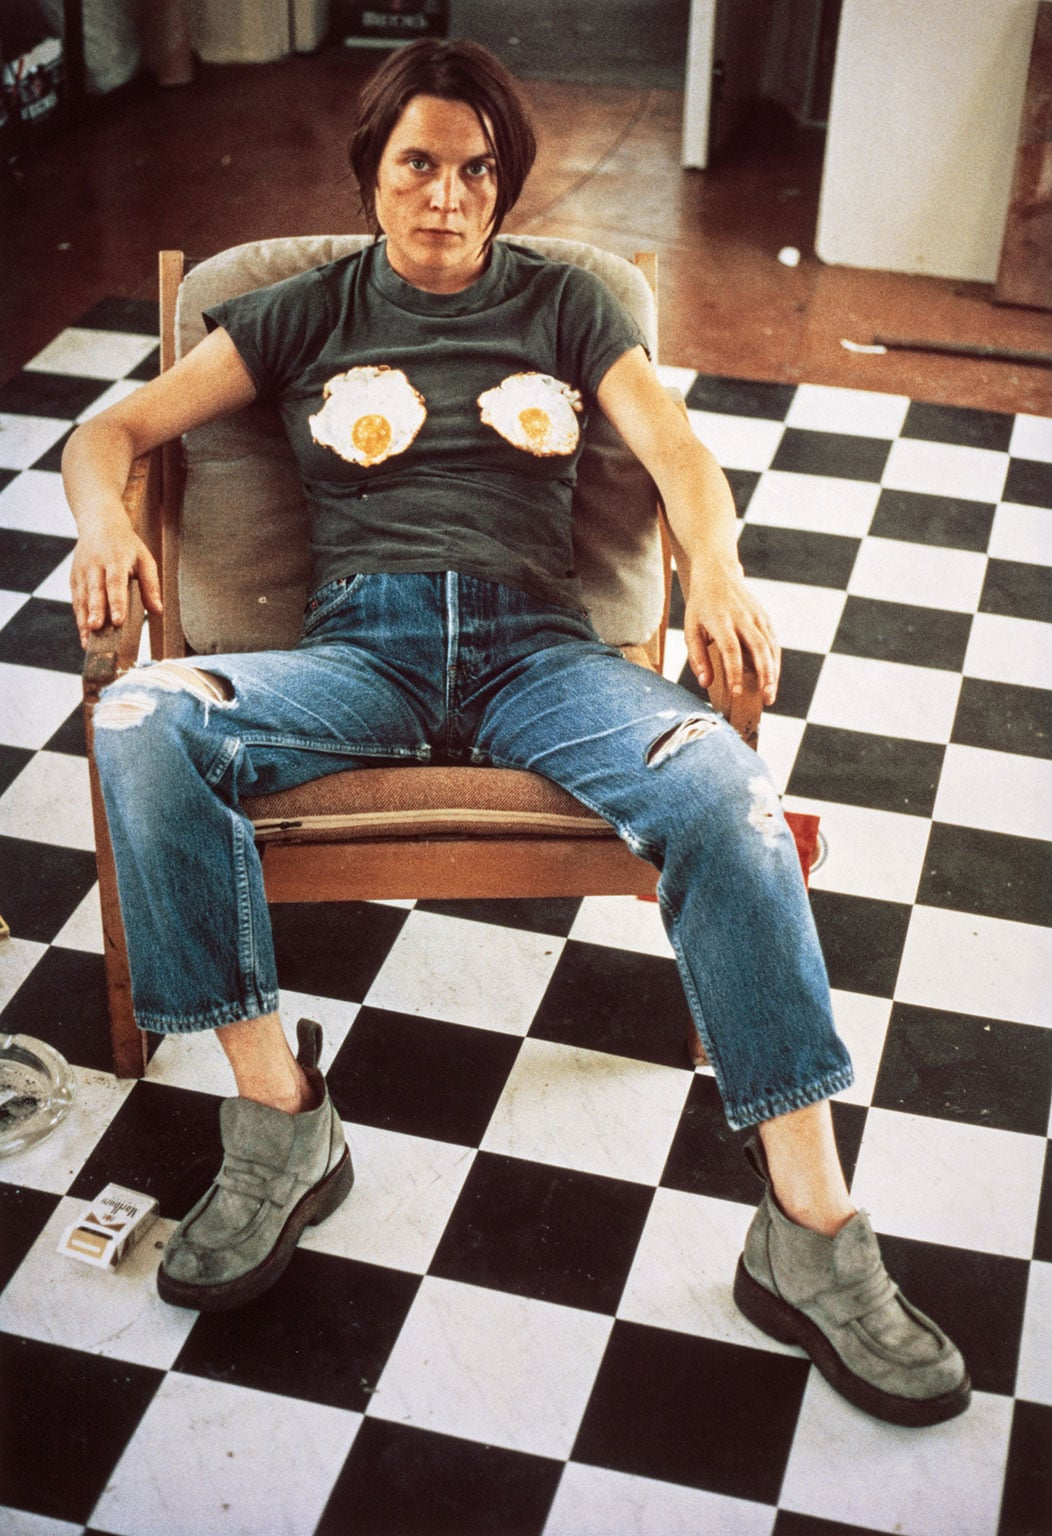 Self-Portrait with Fried Eggs, 1996 - Copyright the artist, courtesy Sadie Coles HQ, London